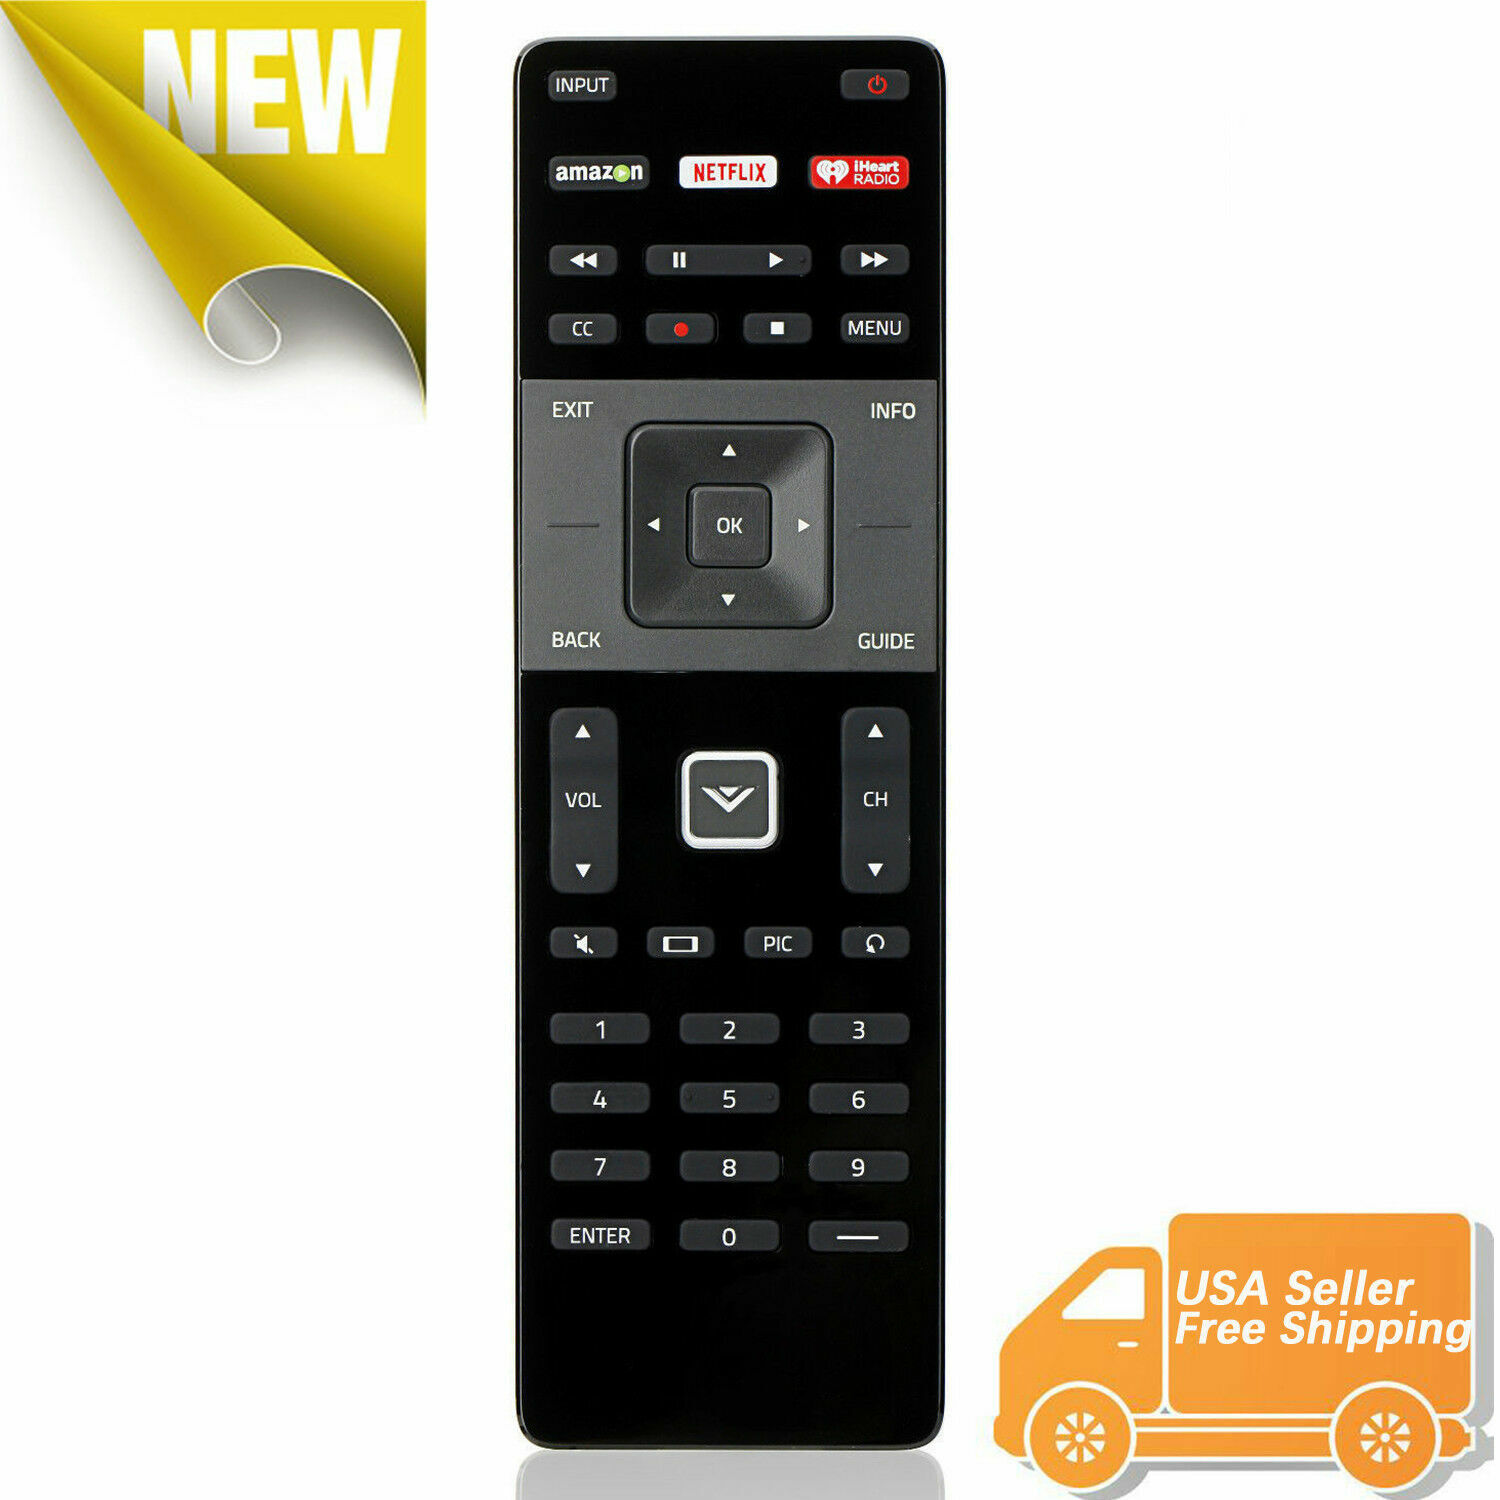 New Replaced XRT122 Smart TV Remote For Vizio Amazon/Netflix/iHeart/ Home Key Consumer Electronics